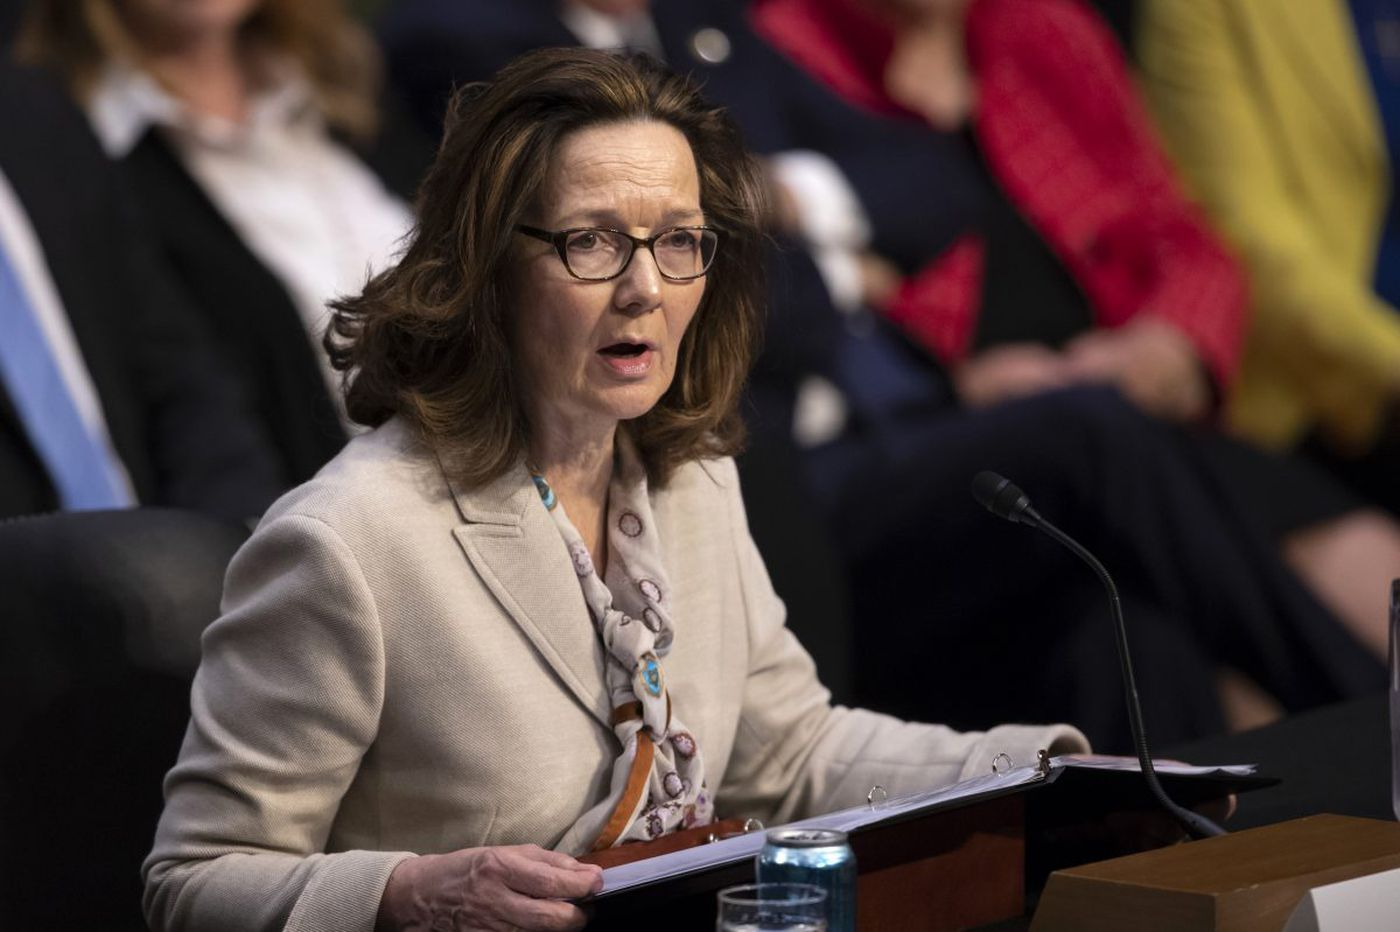 Gina Haspel is too qualified to pass up | Opinion